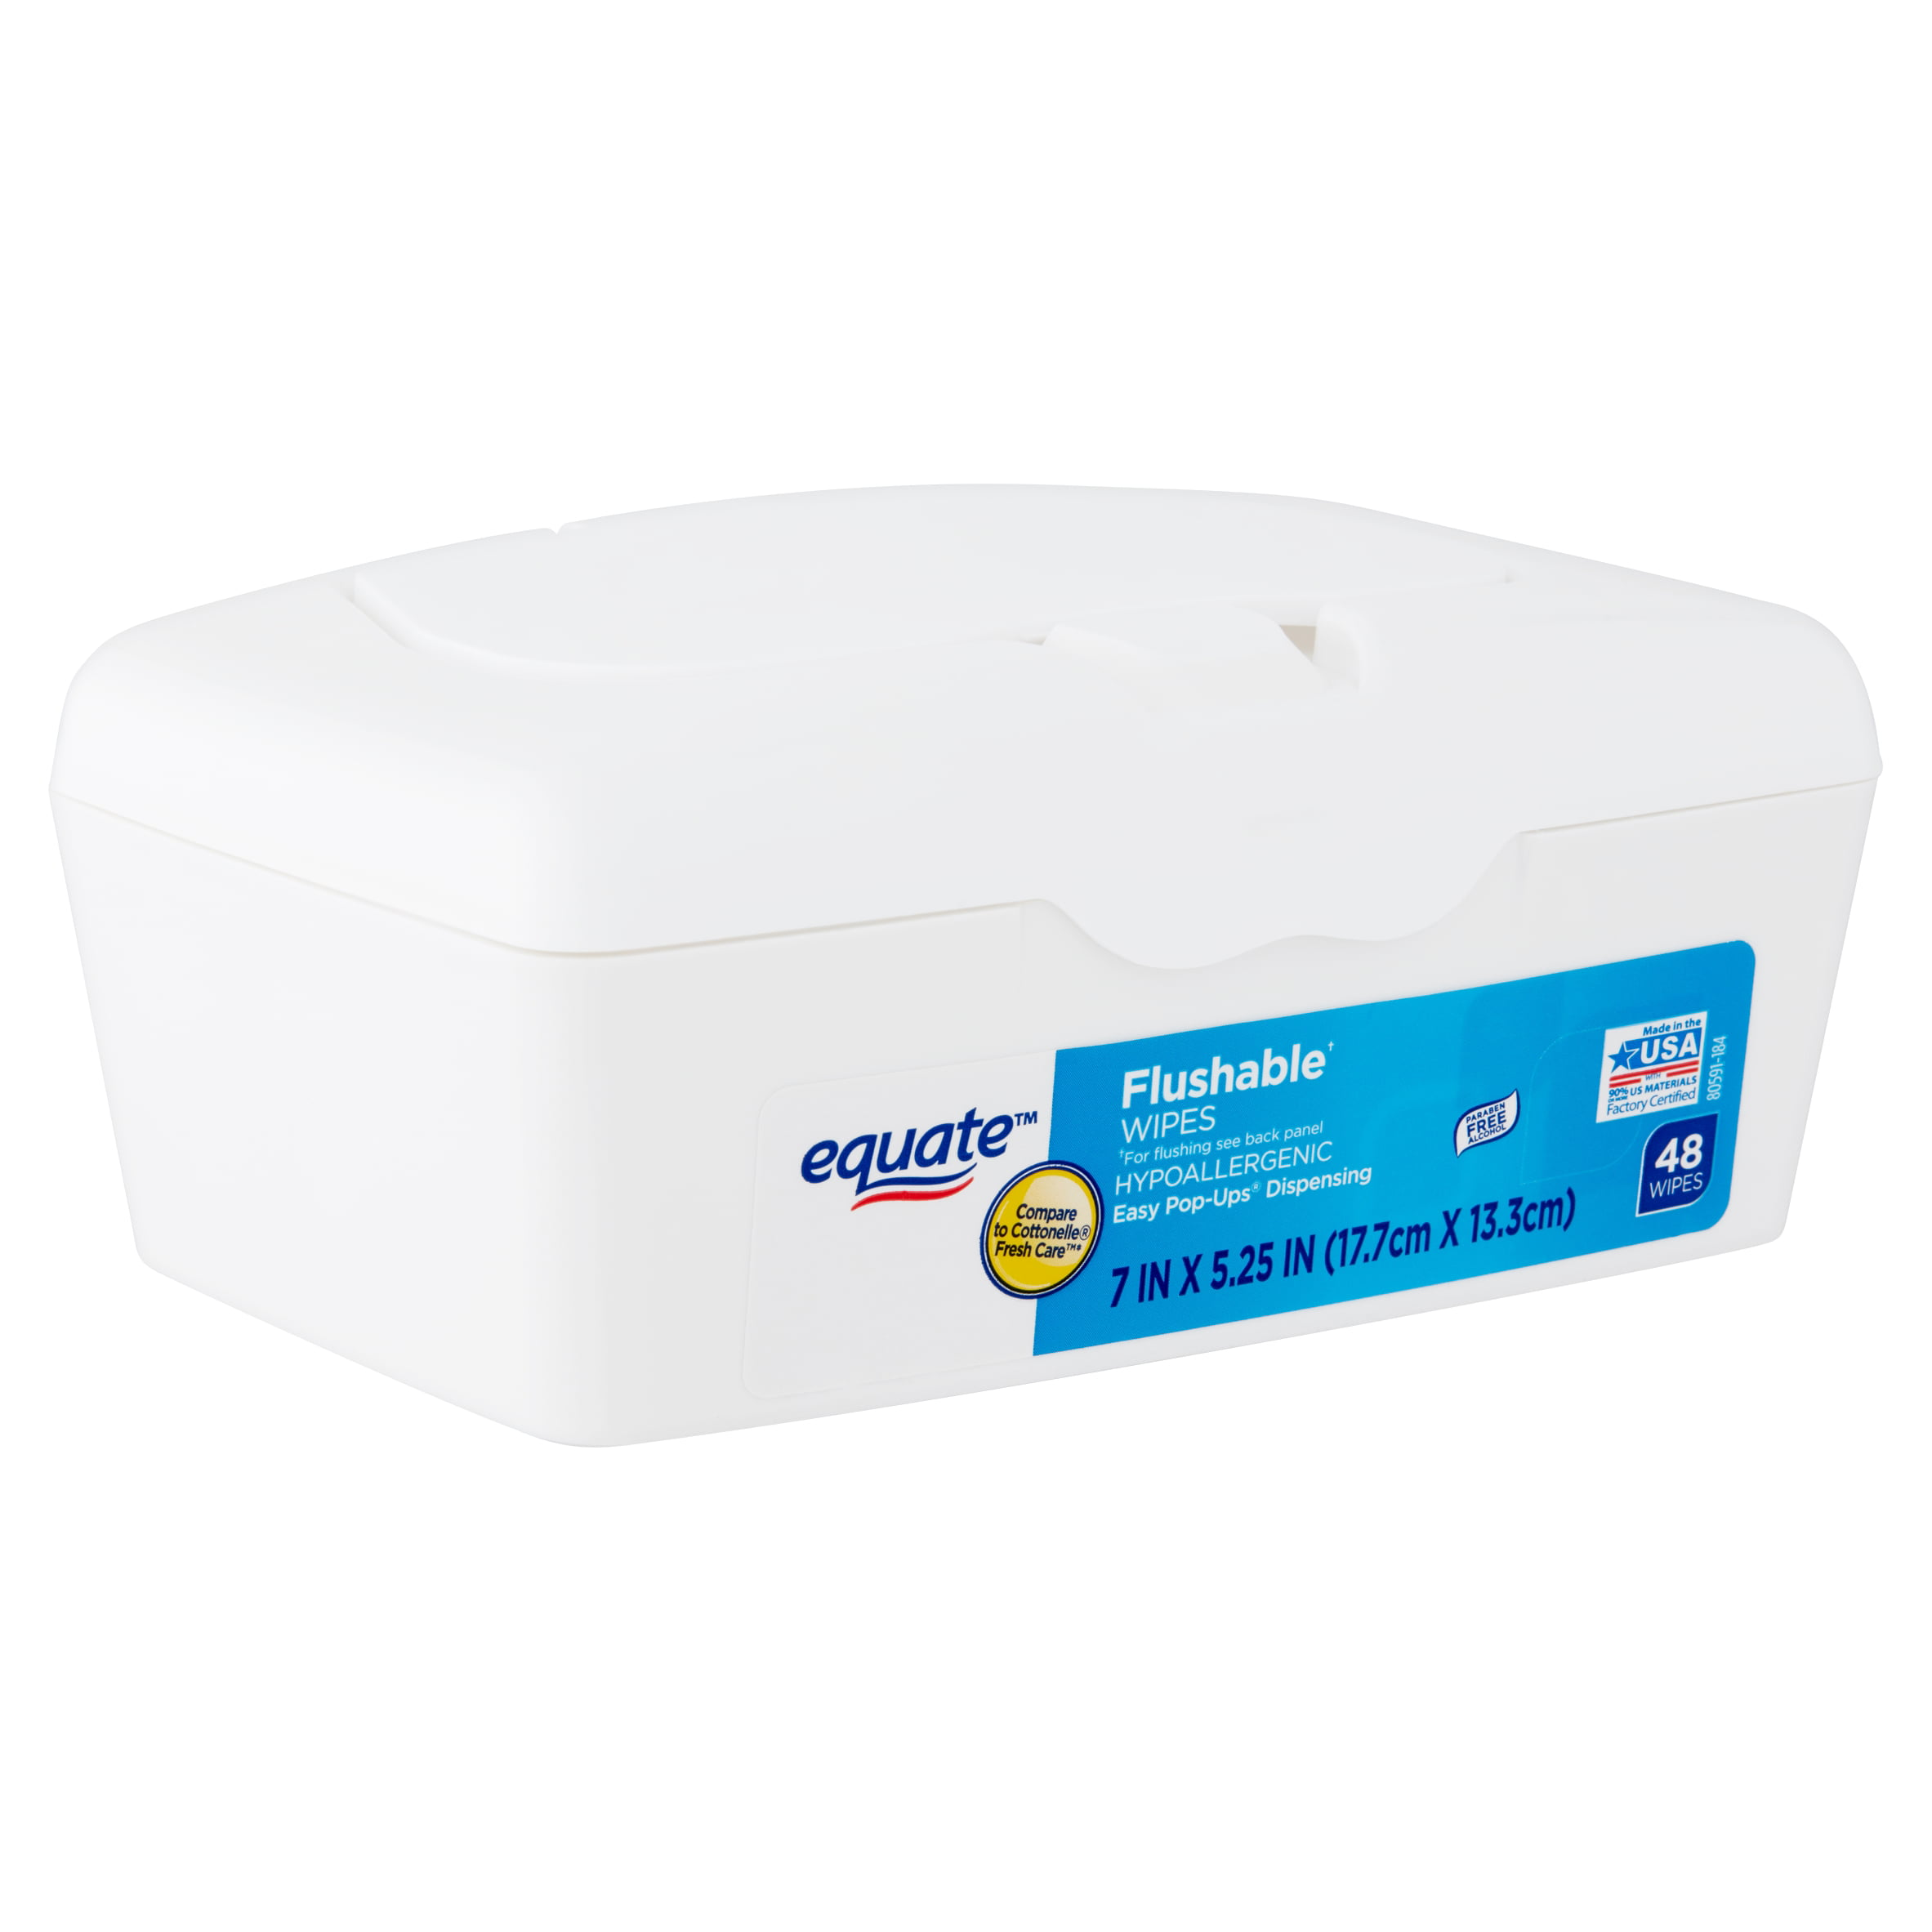 Equate Flushable Wipes 240 Count. Fresh Scent